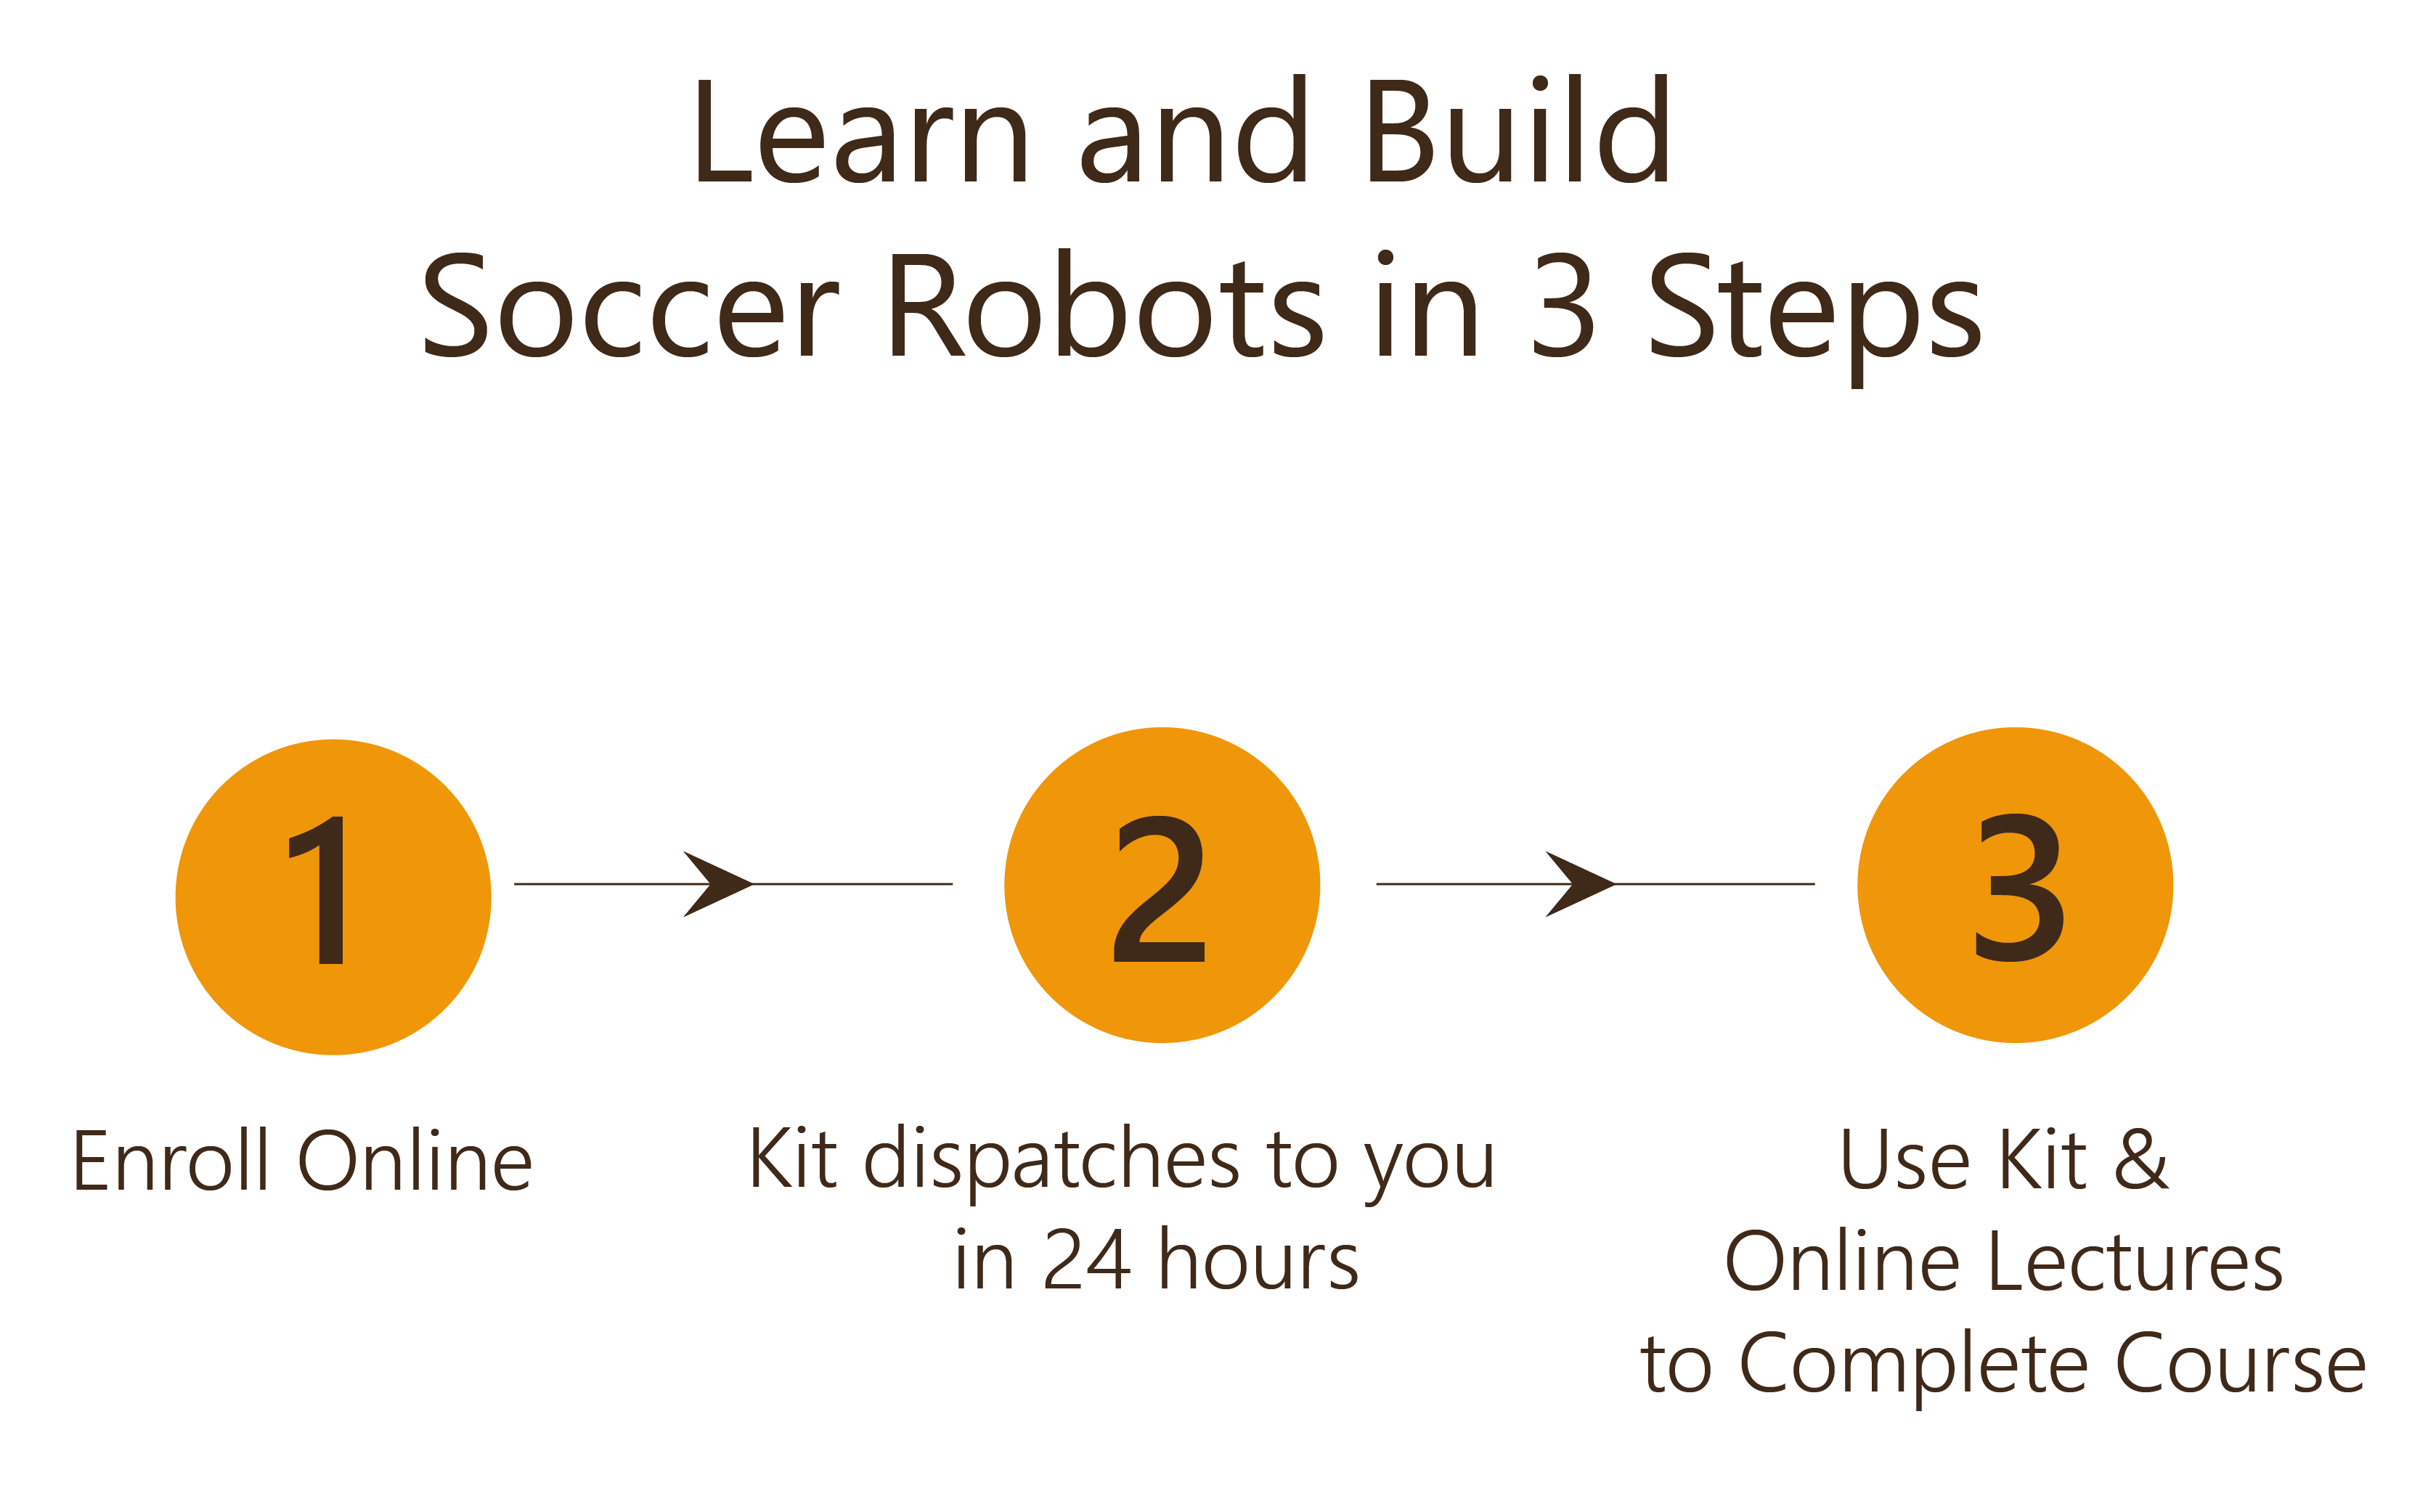 Learn and Build Soccer Robot in 3 Steps